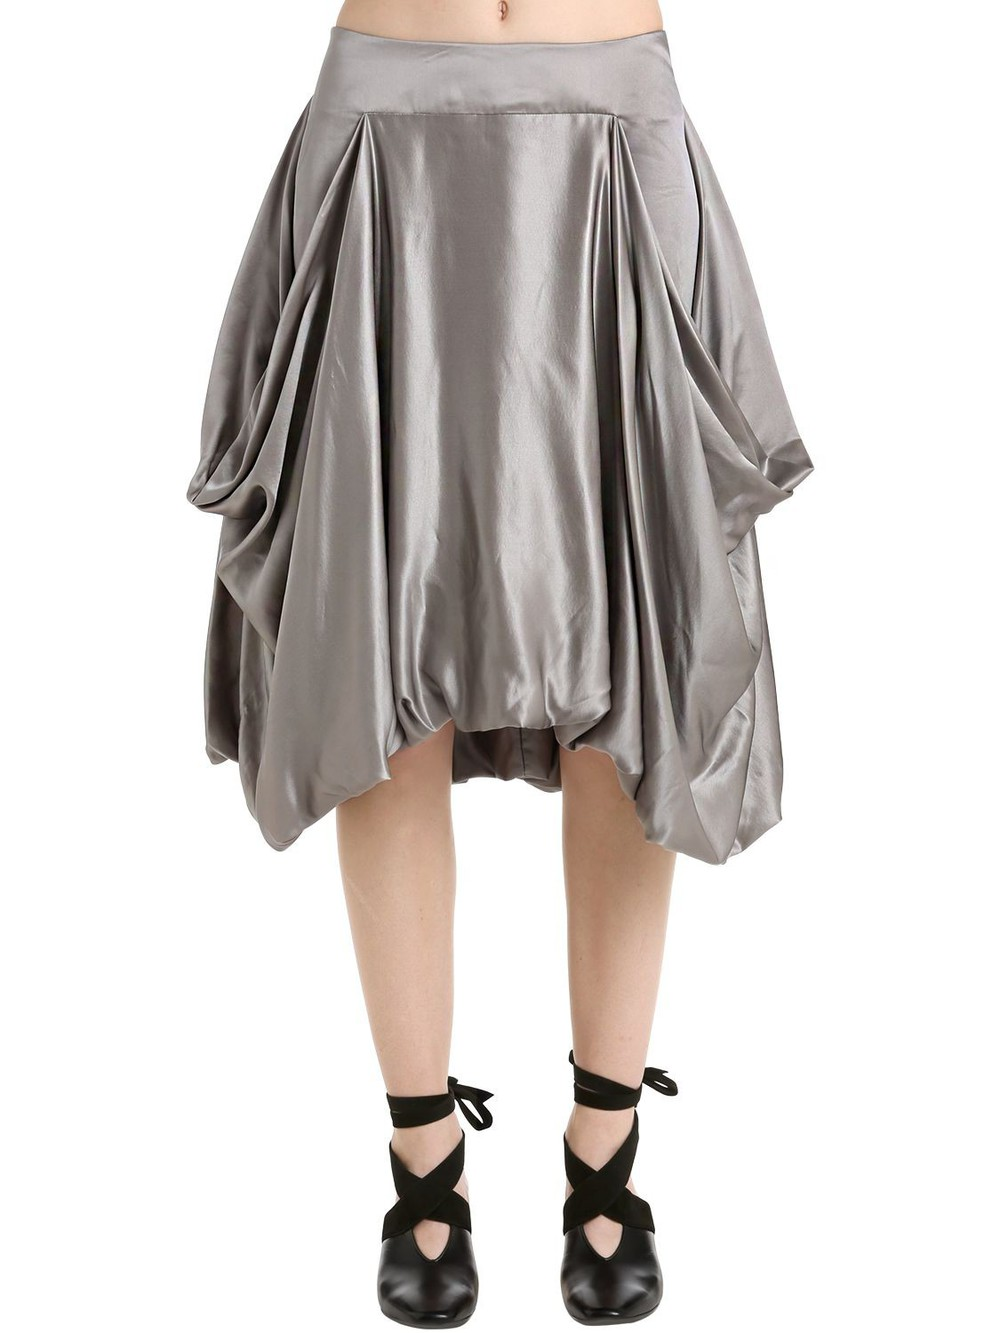 J.W.ANDERSON Asymmetric Satin Skirt in grey / silver